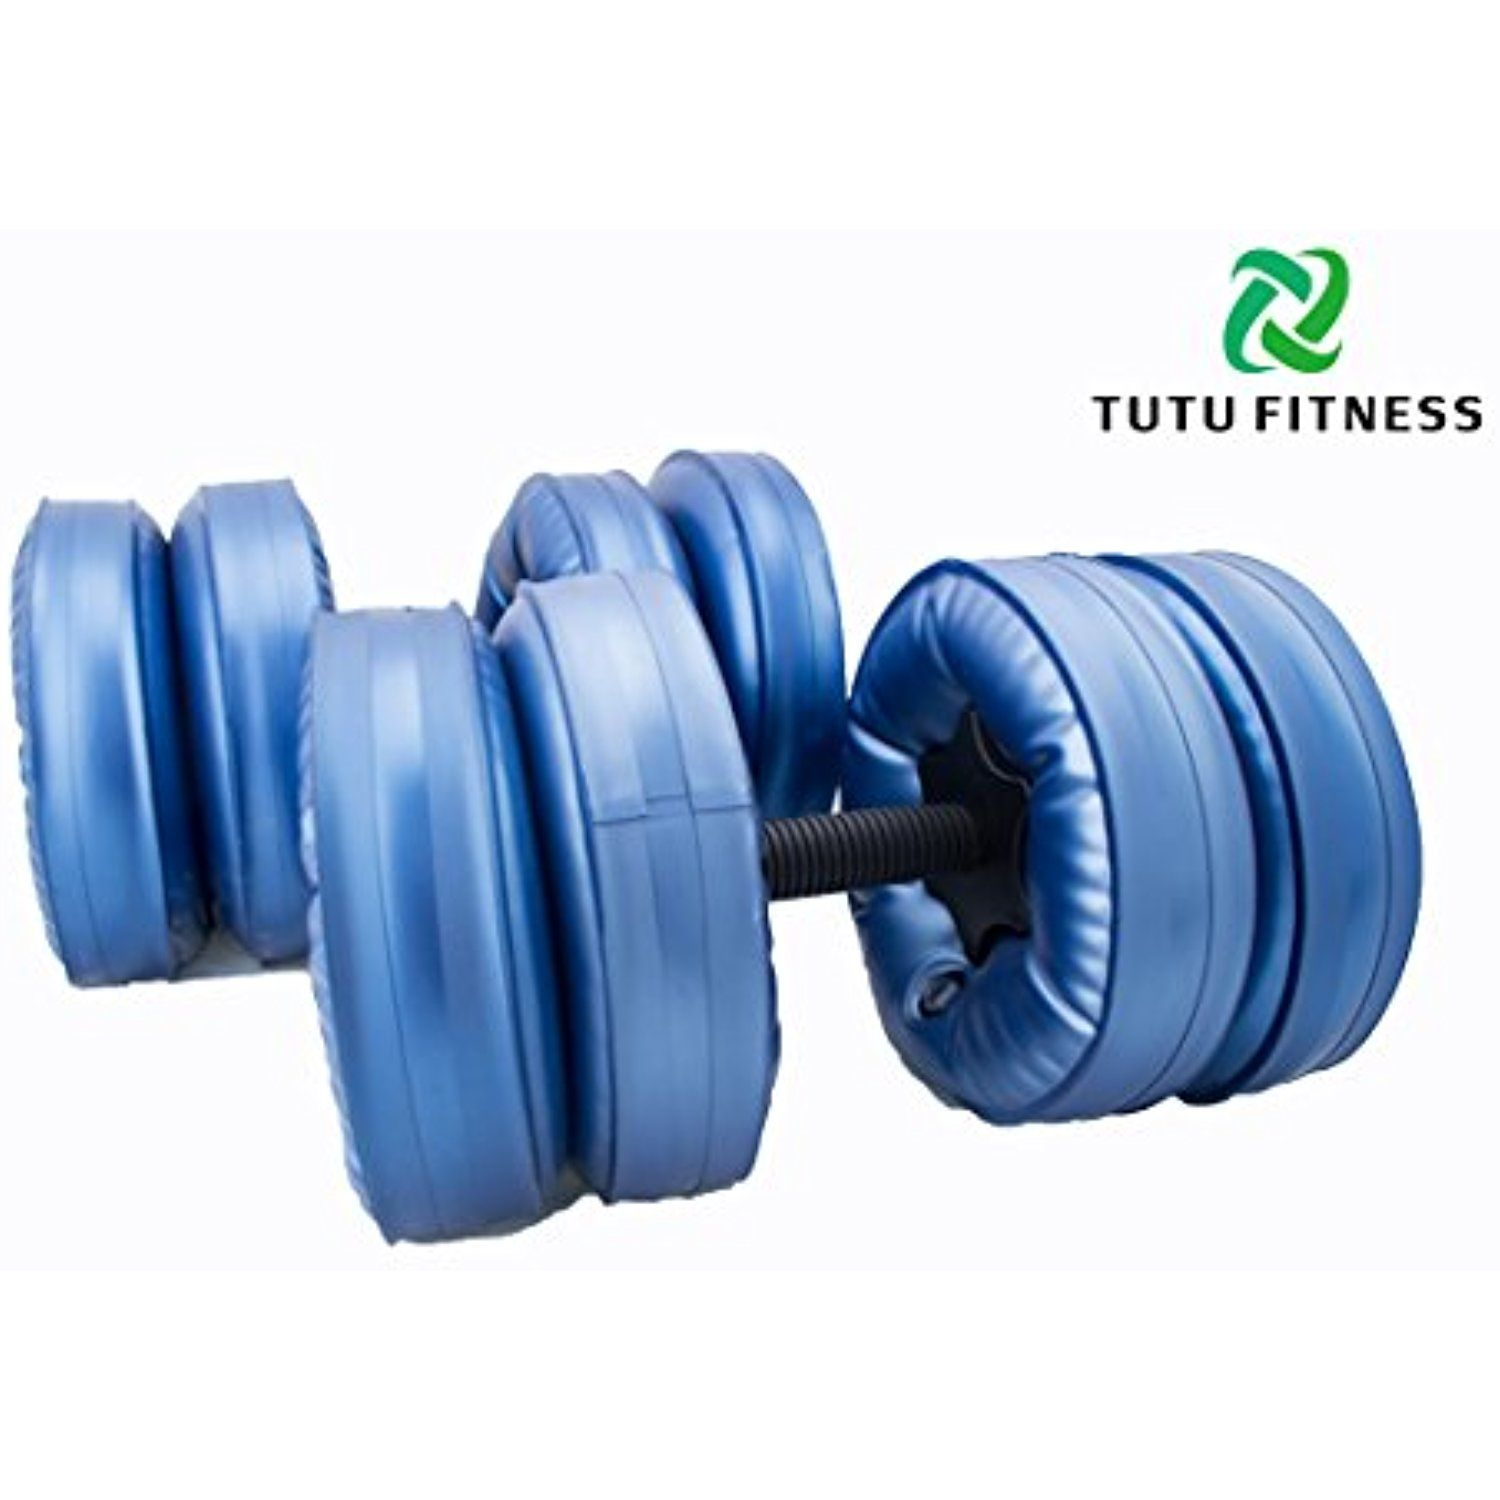 2017 Newest Tutu Fitness Water Filled Adjustable Dumbbells Perfect Traveling Abs Exercise Equipment Fo Adjustable Dumbbells No Equipment Ab Workout Dumbbells